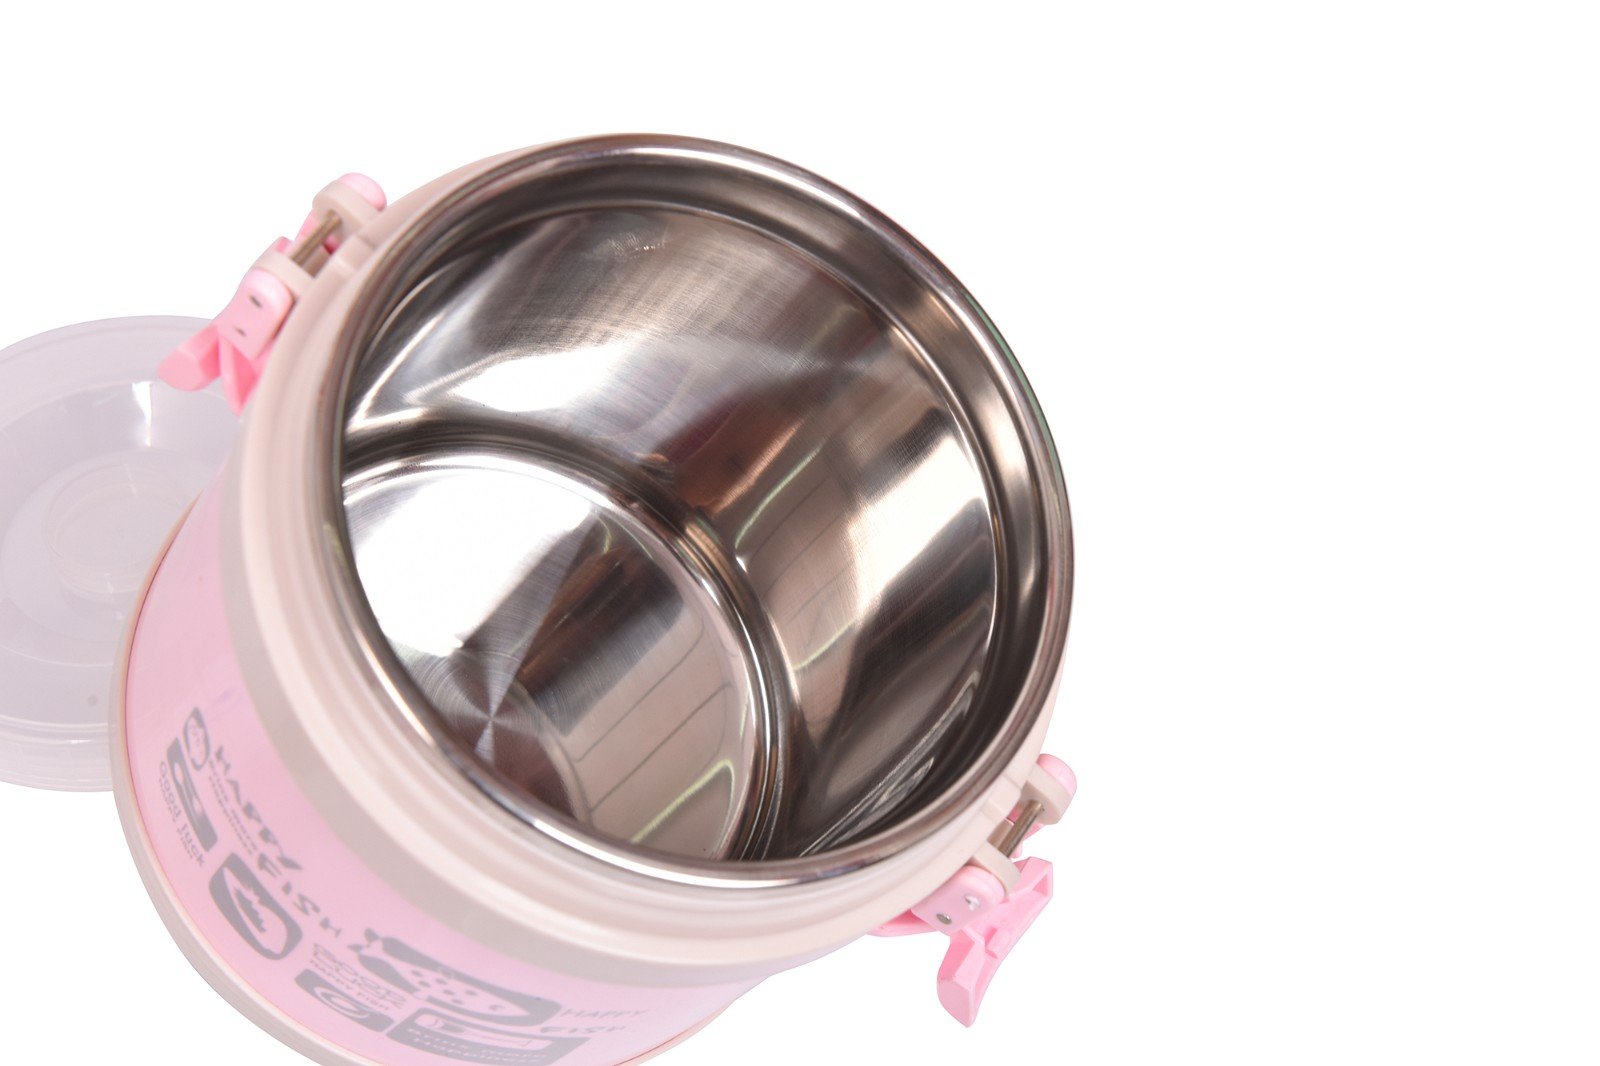 High quality Stainless steel food warmer Quotes,China Stainless steel food warmer Factory,Stainless steel food warmer Purchasing